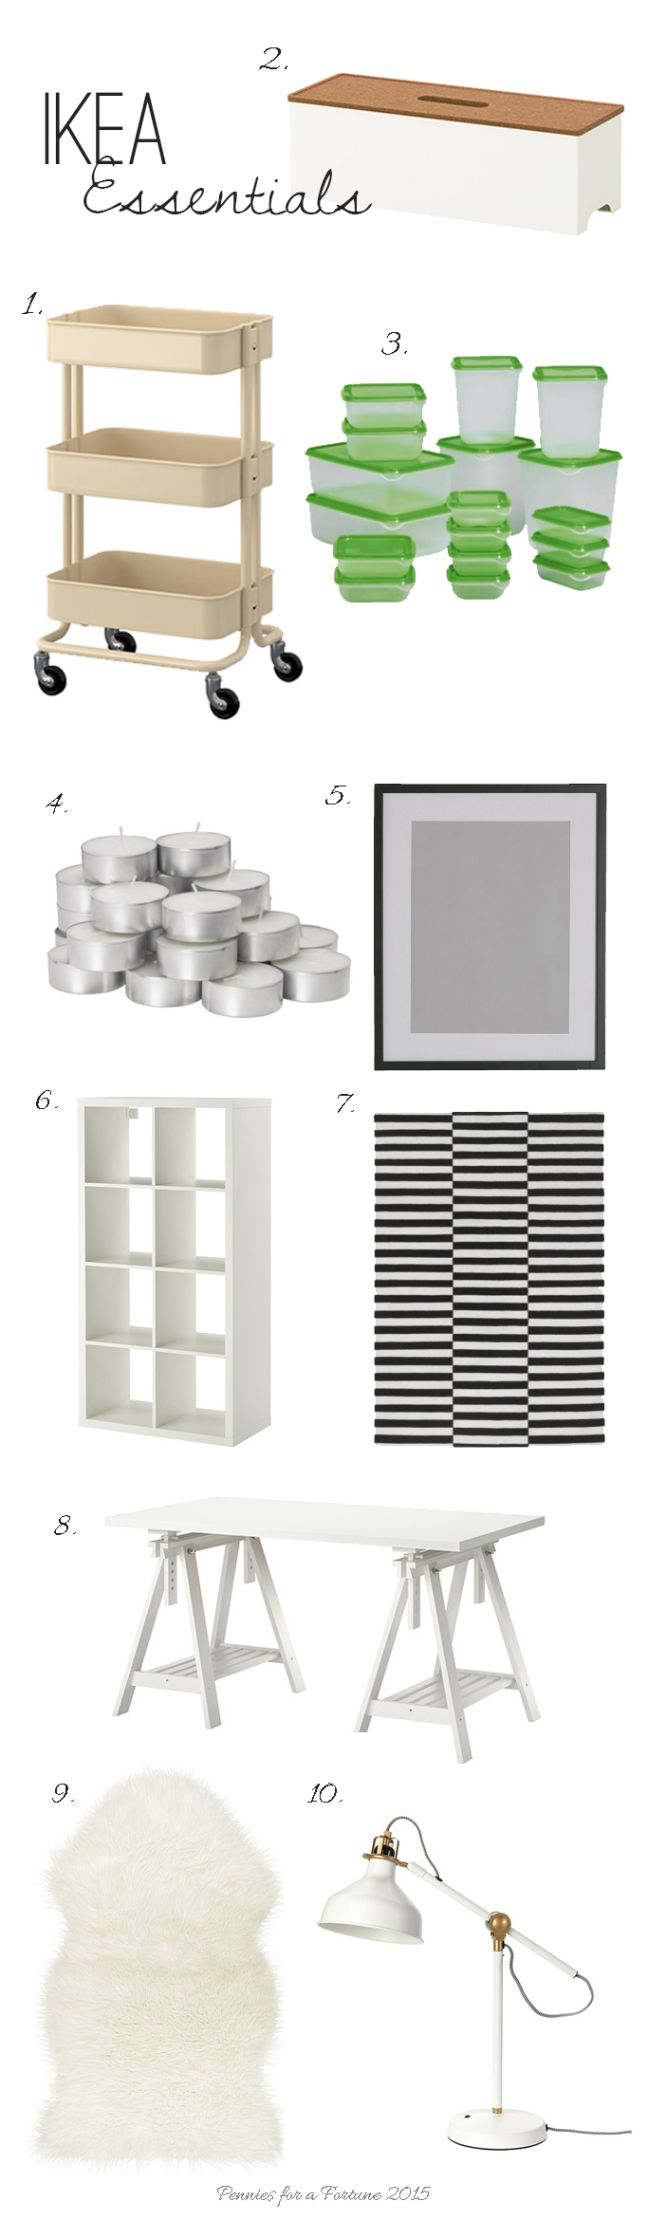 You Can Make IKEA Products Look Chic And Expensive Heres My Top 10 Essentials List Which Will Guide Through Your Nearest Store